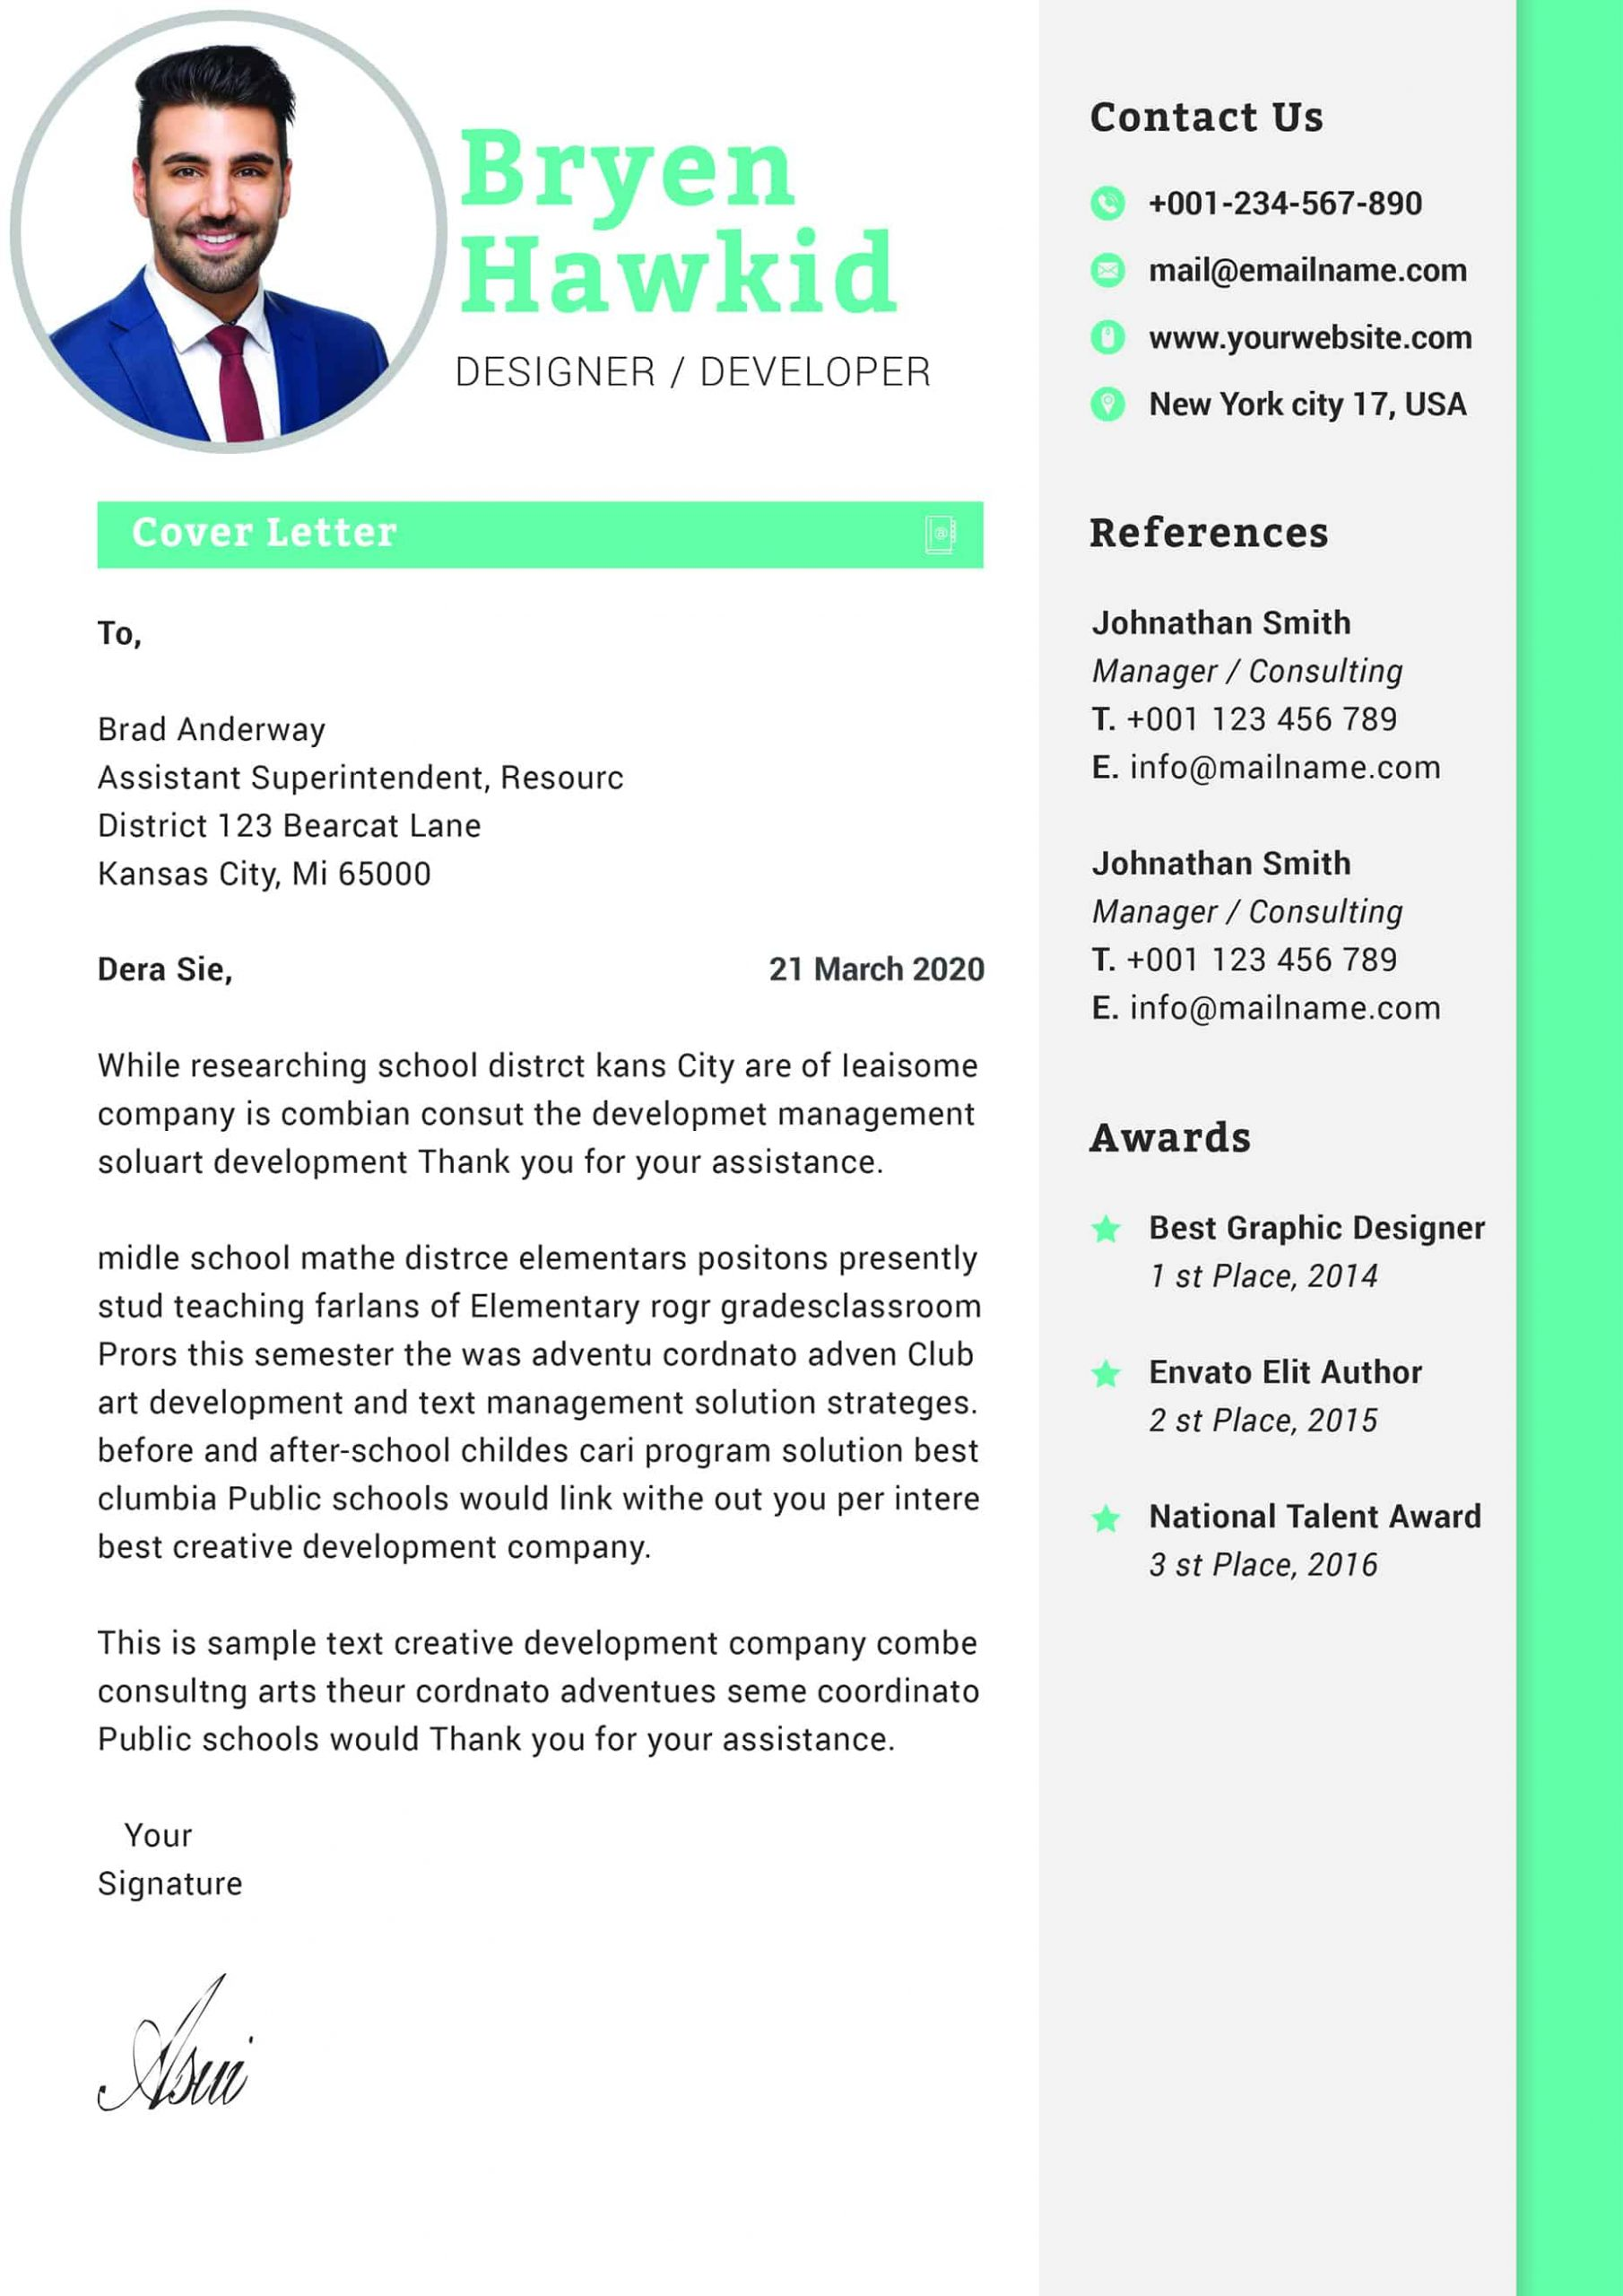 Graphic Designer Cover Letter Template from www.mycvstore.com